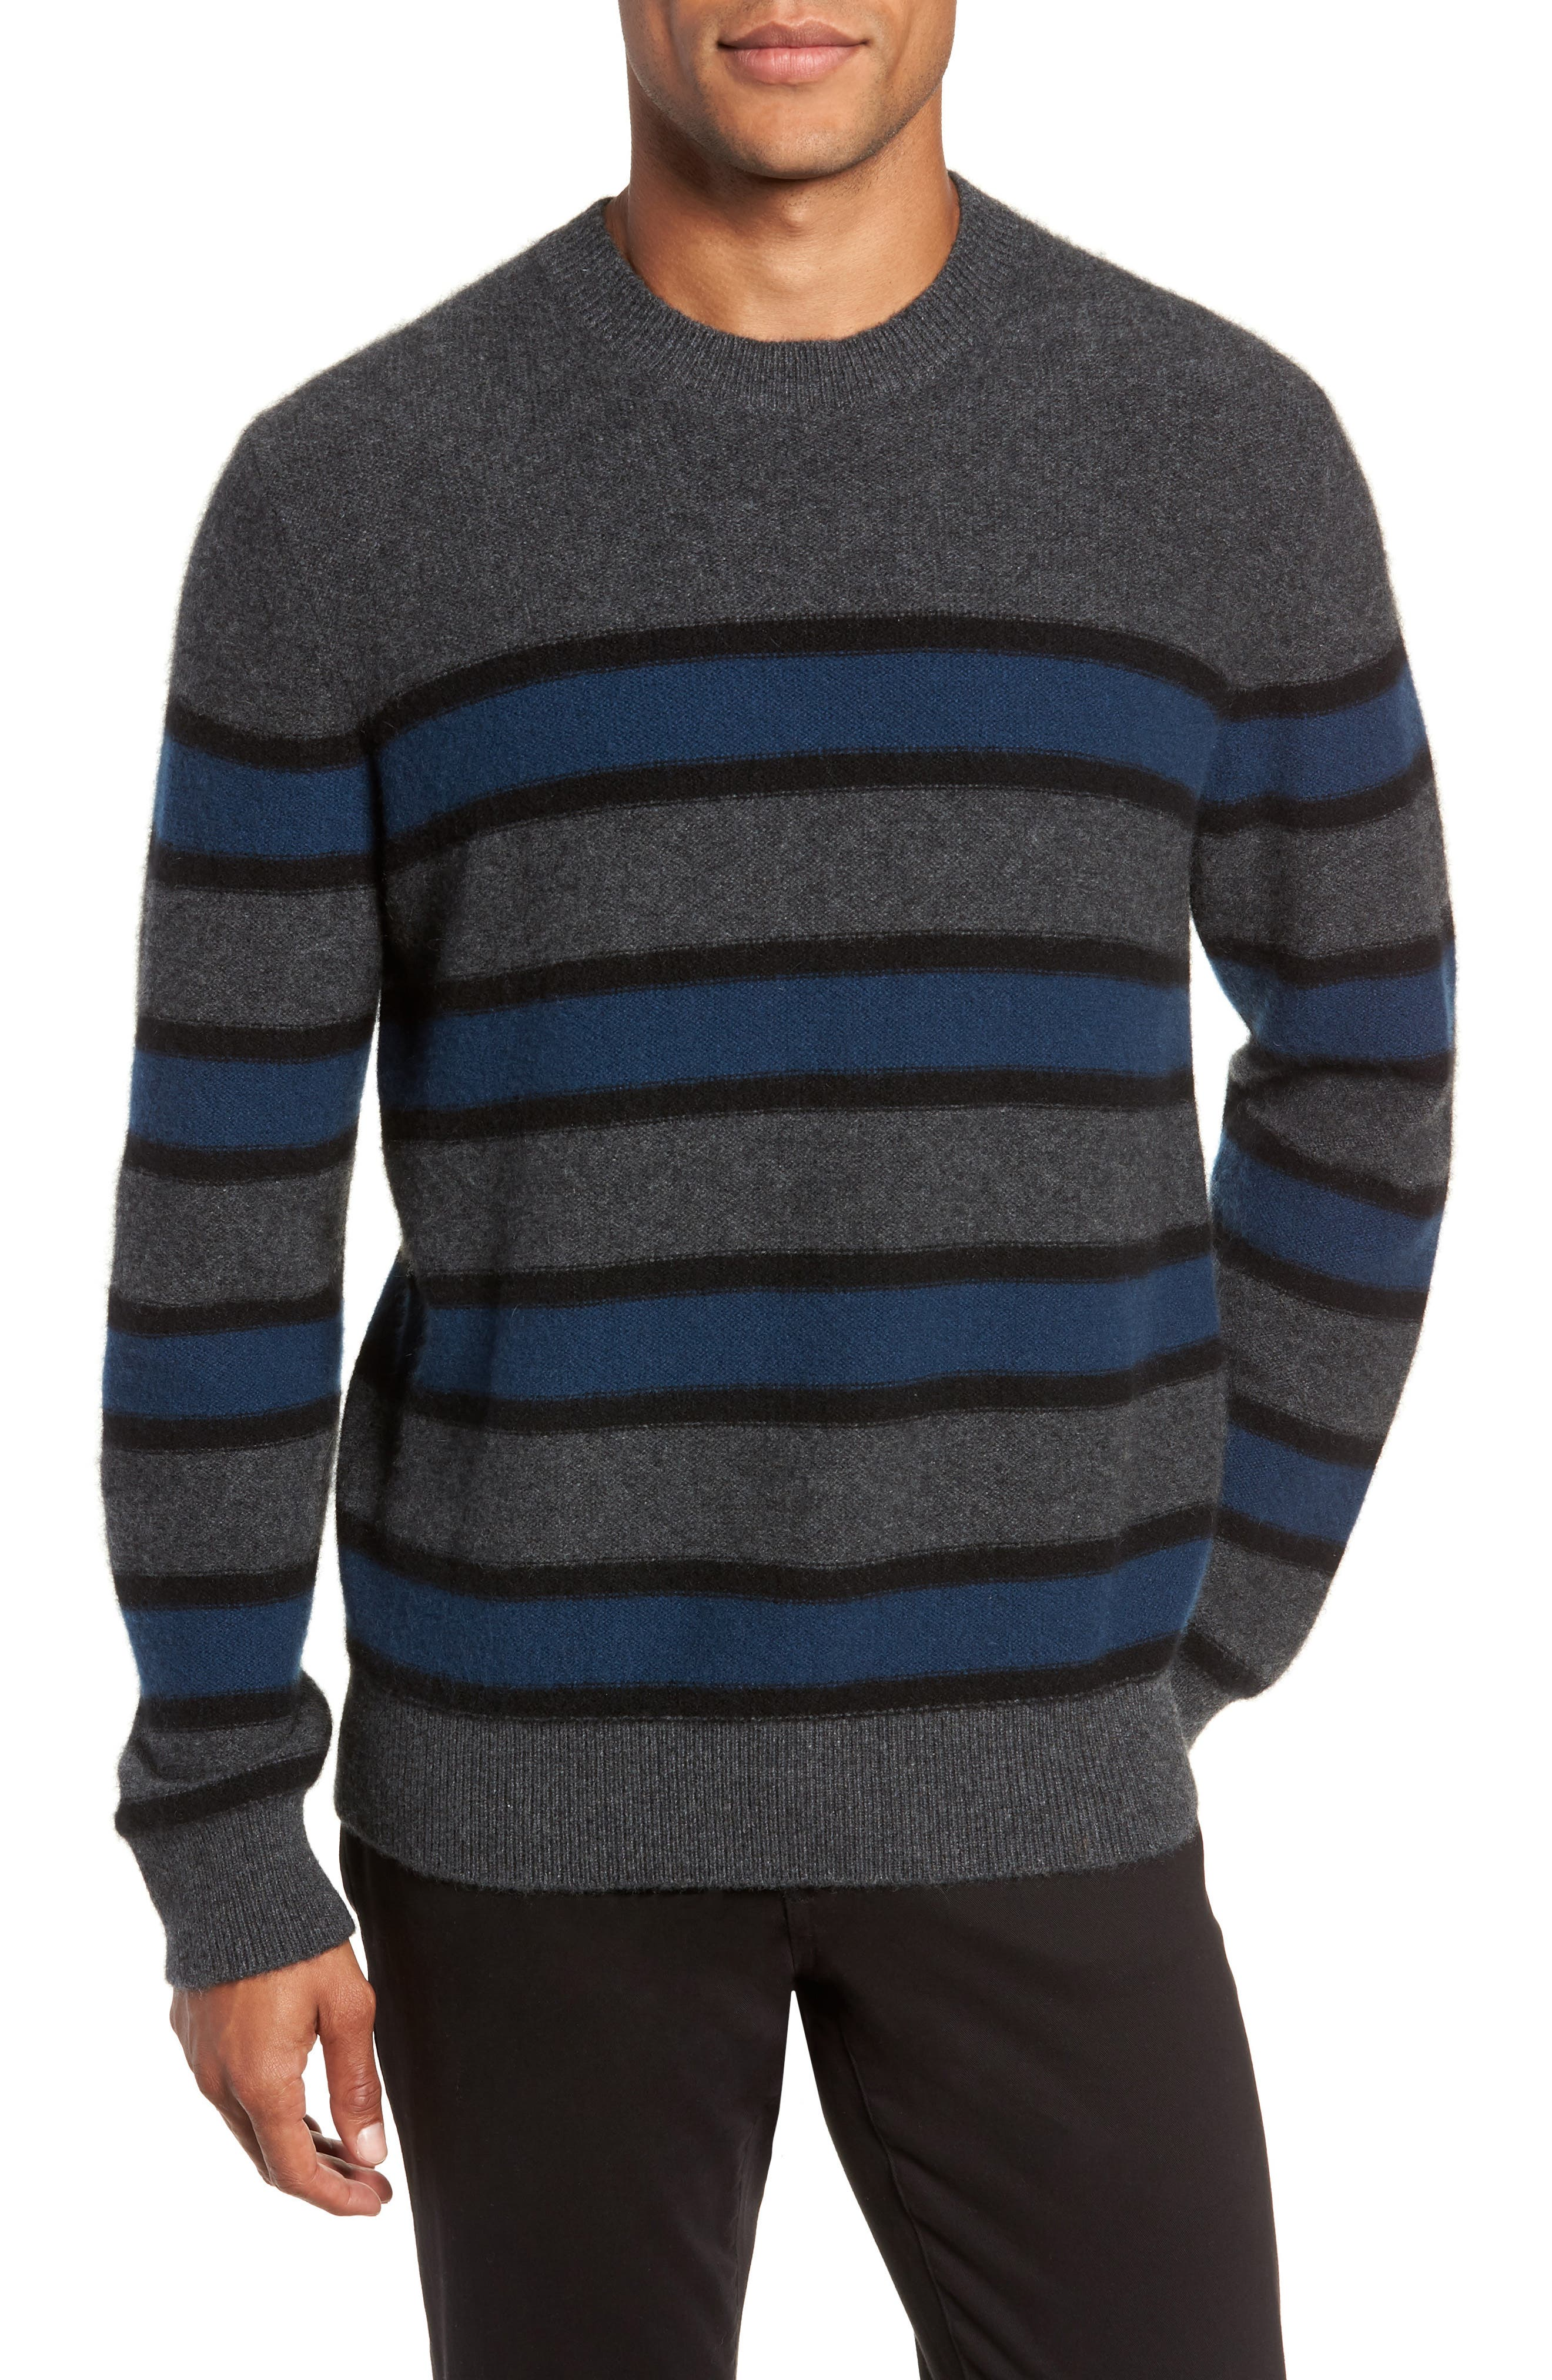 Regular Fit Stripe Cashmere Sweater,                         Main,                         color, DARK HEATHER GREY/BLUE